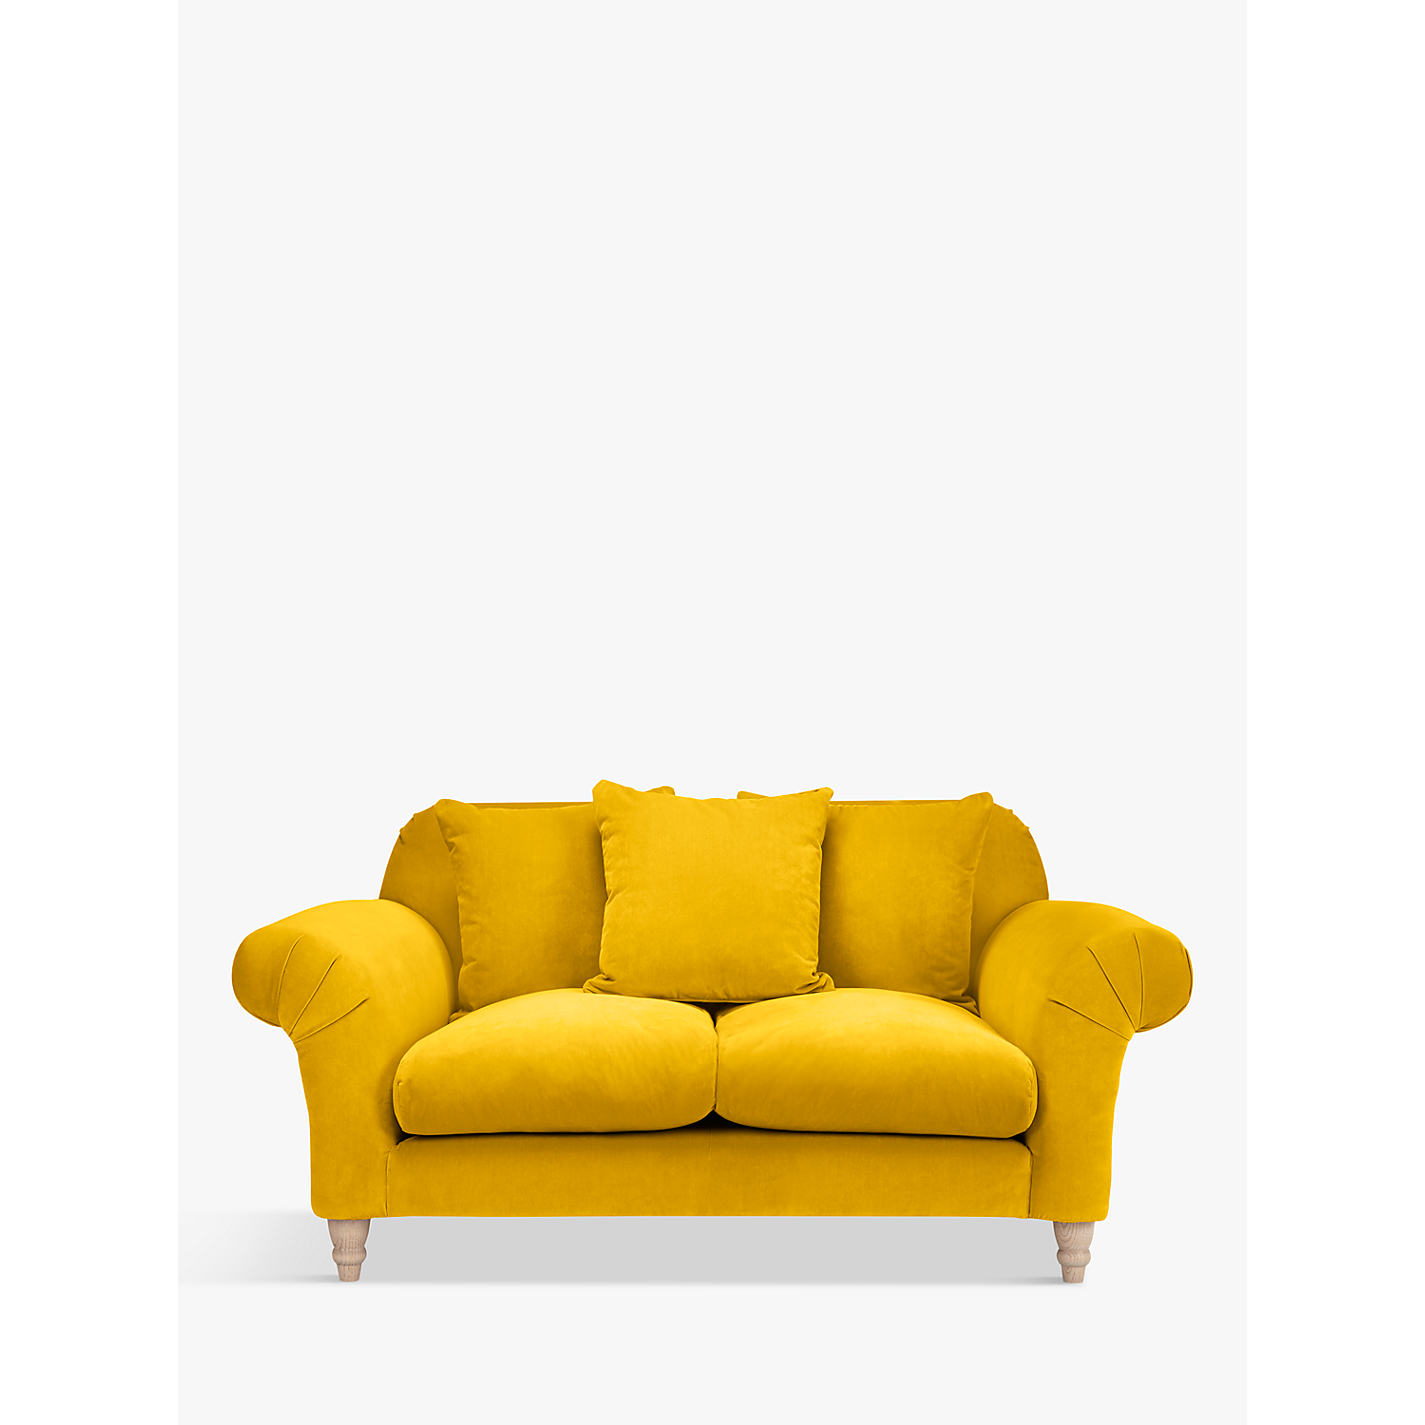 Buy Doodler Small 2 Seater Sofa by Loaf at John Lewis